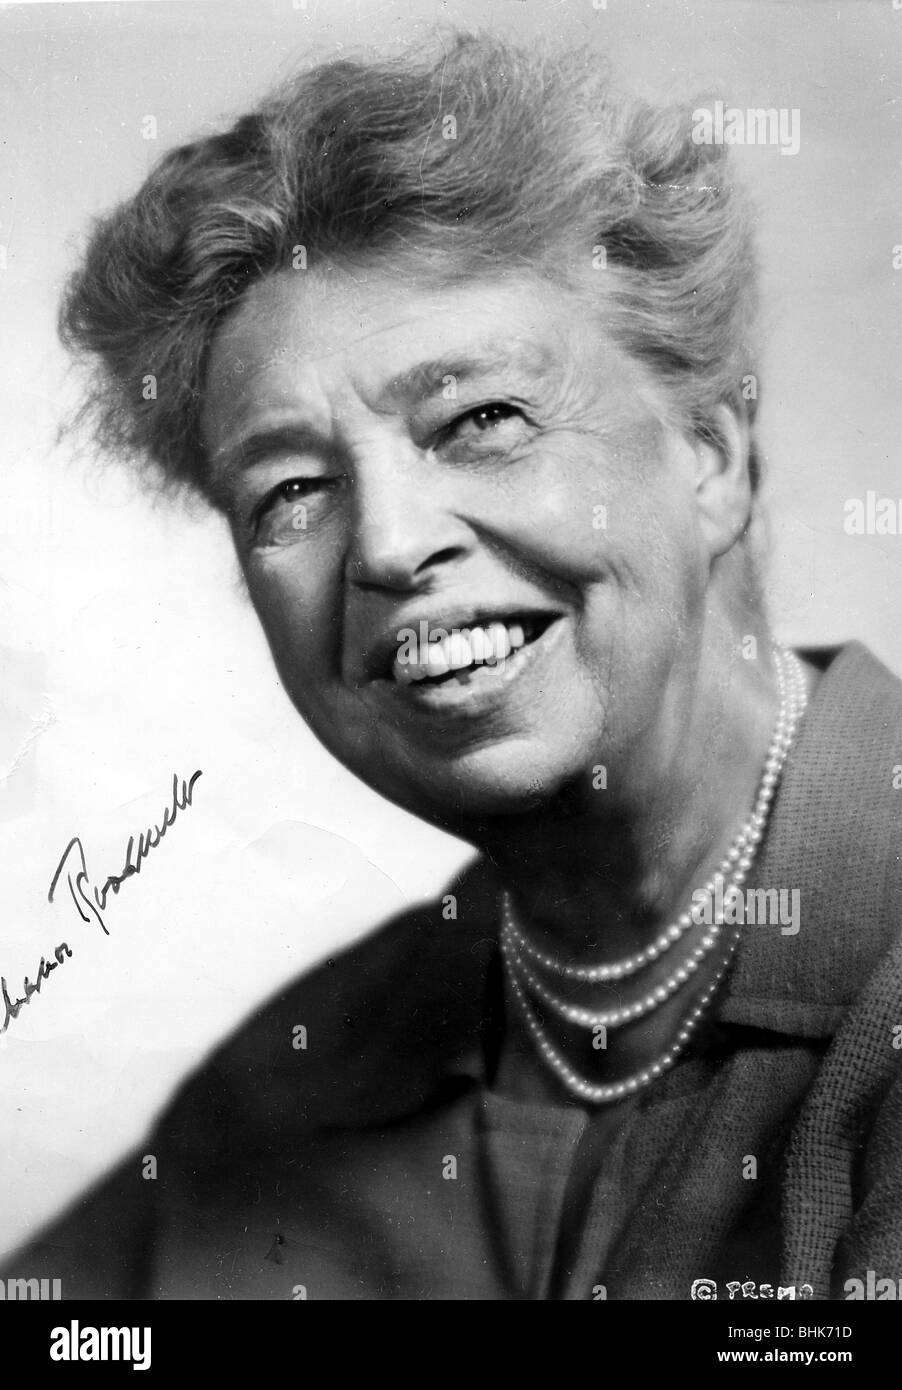 Eleanor Roosevelt (1892-1962), American First Lady. - Stock Image